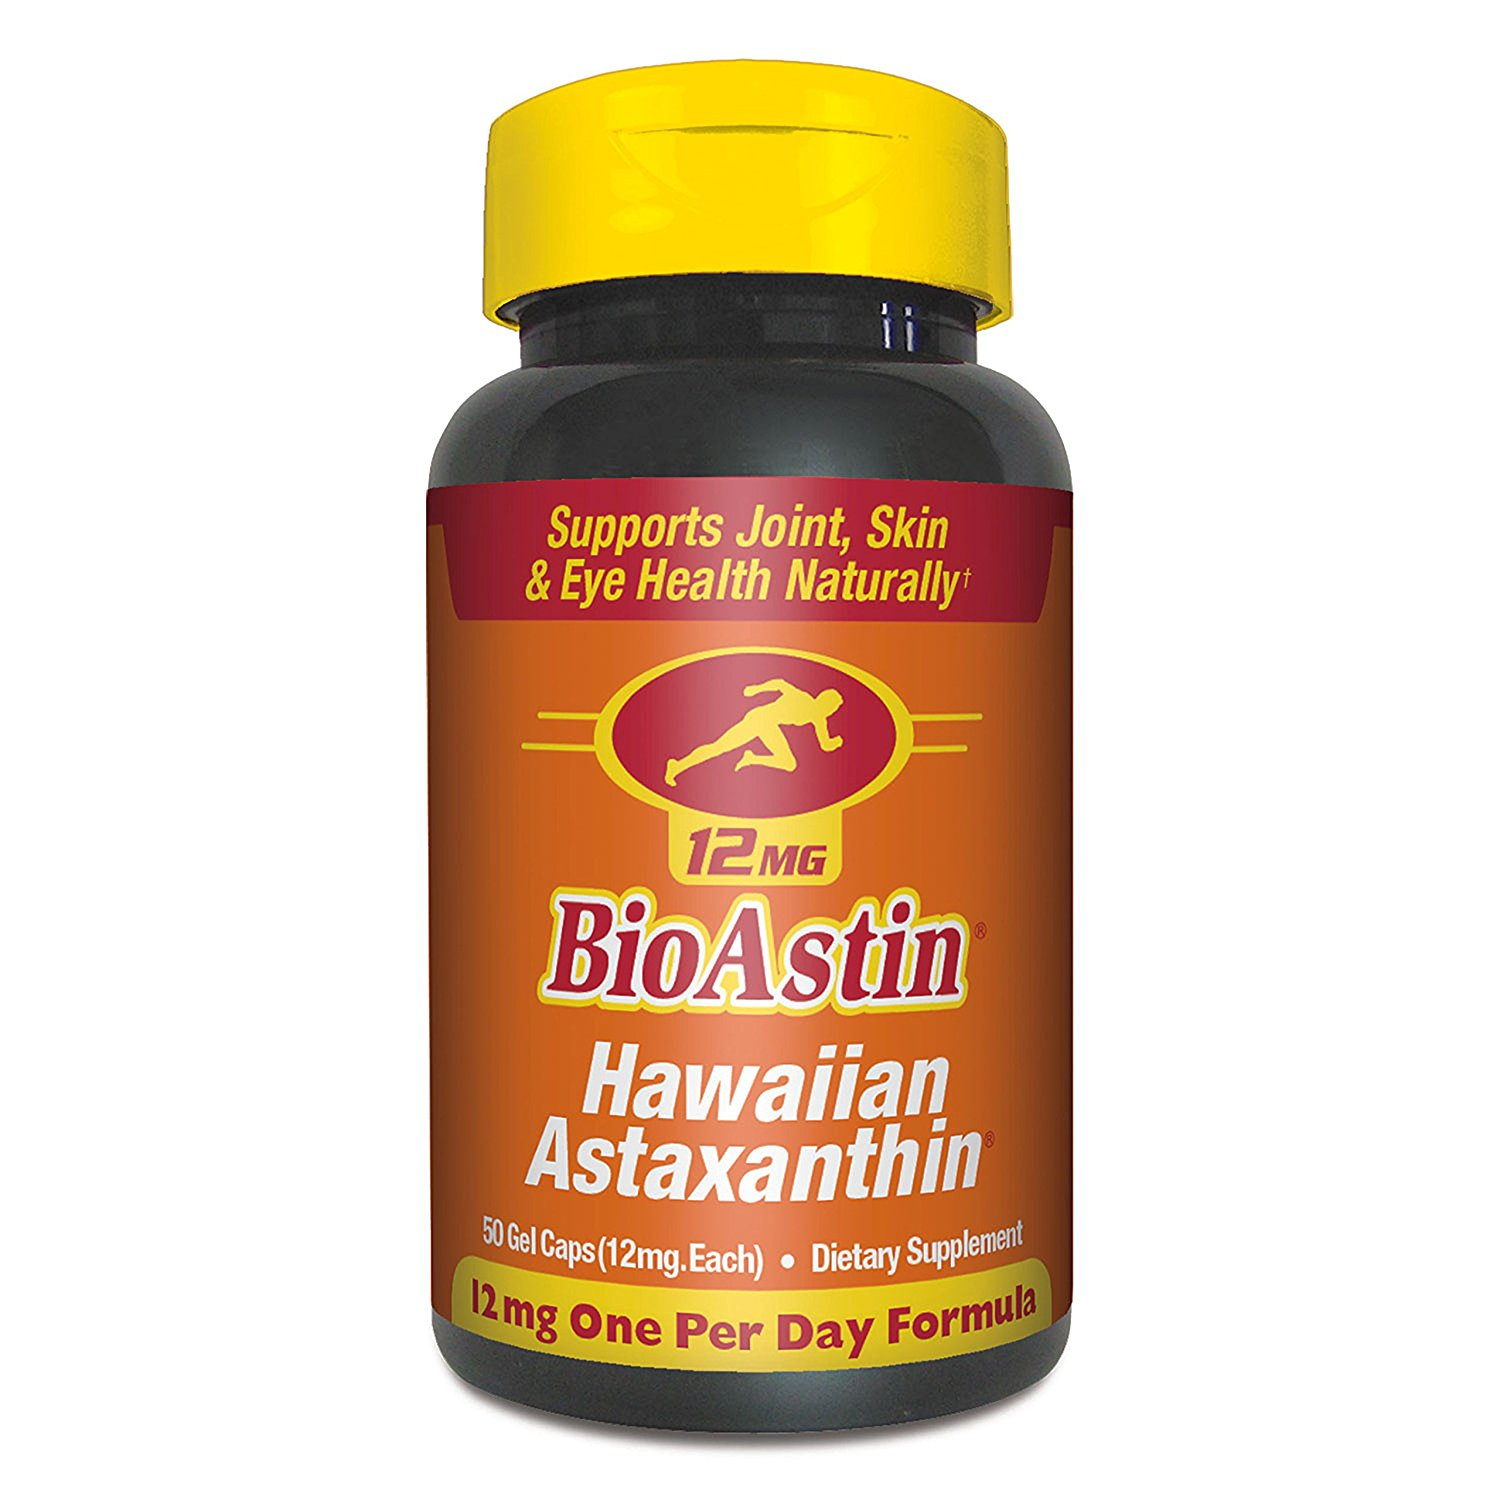 what is bioastin hawaiian astaxanthin? Find out why this could be great for you